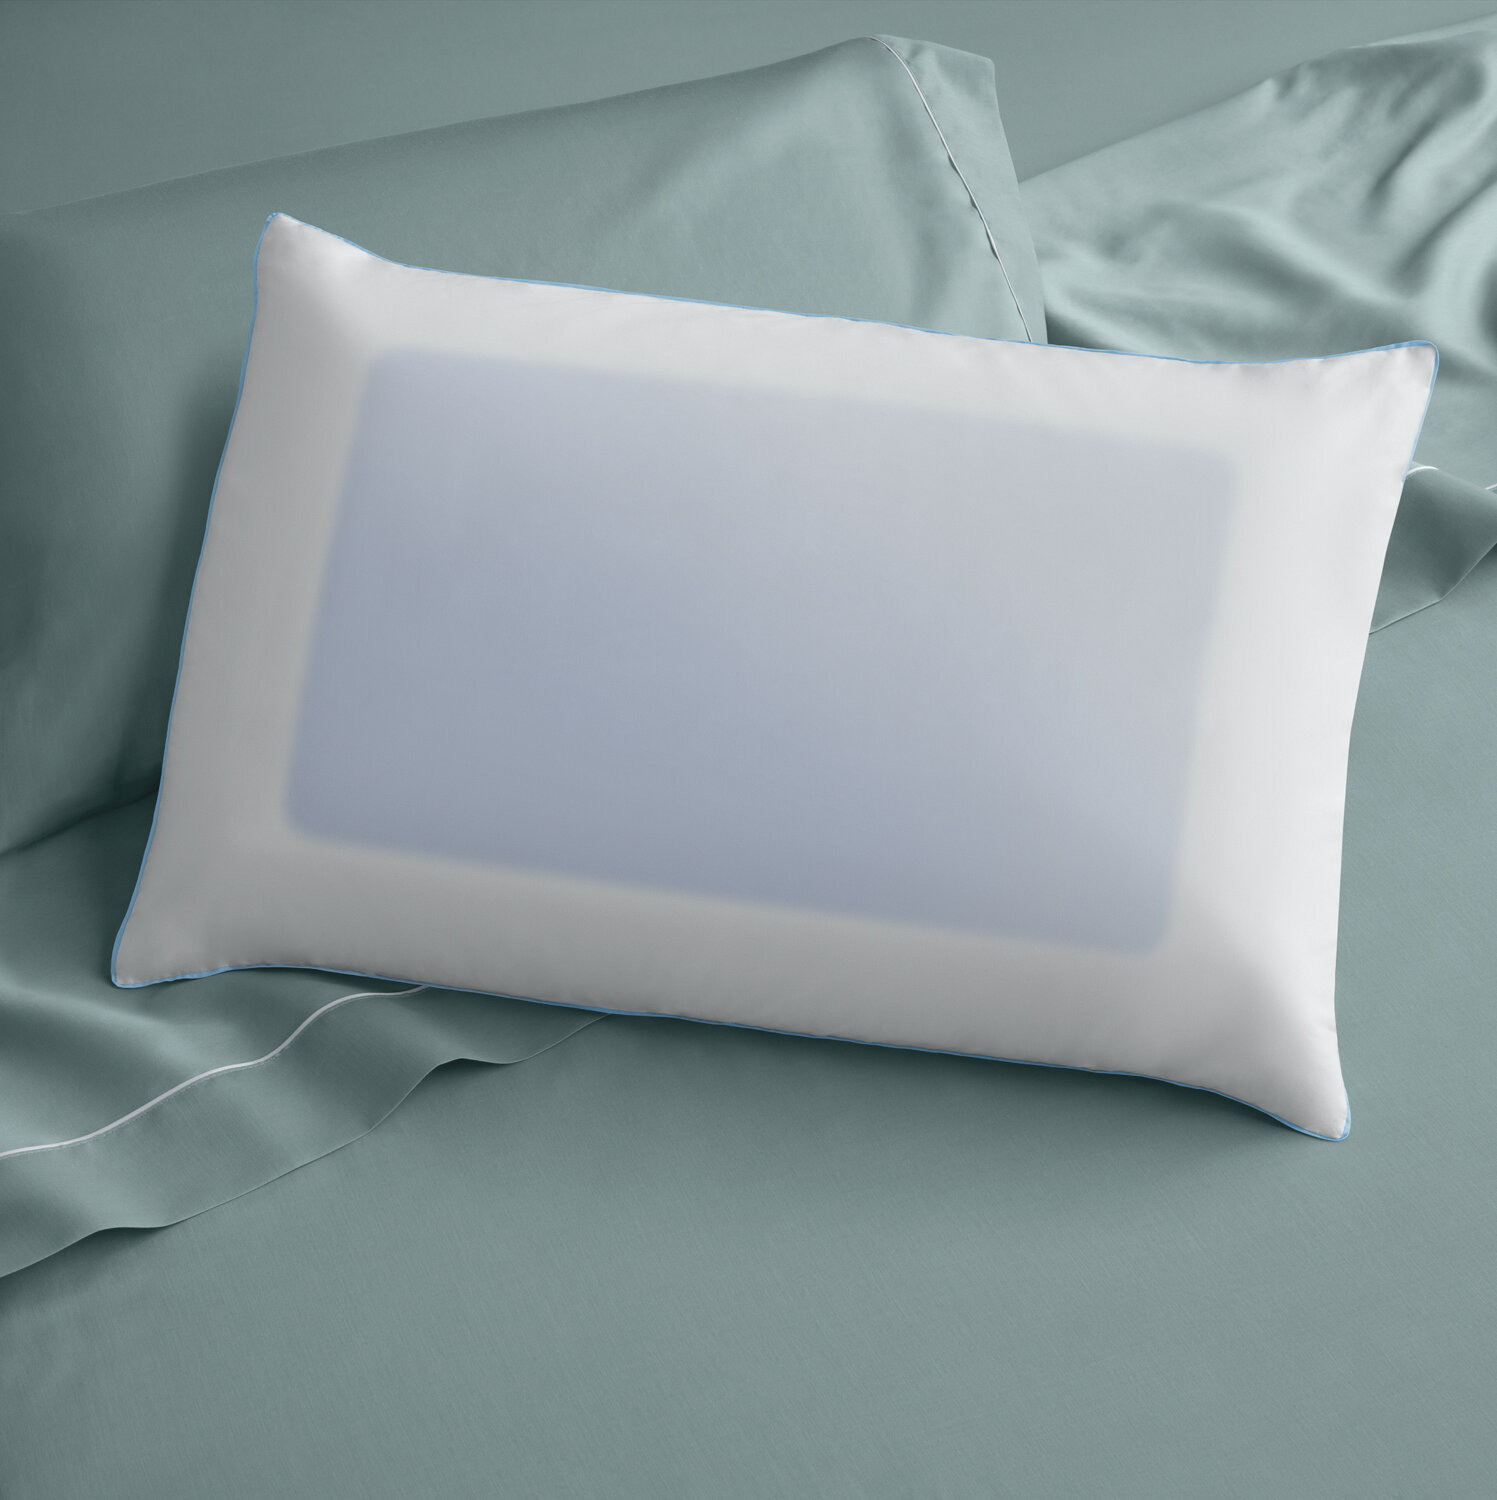 comforter logo pillows no memory comfort ultraluxe foam white pillow gel products stacked revolution